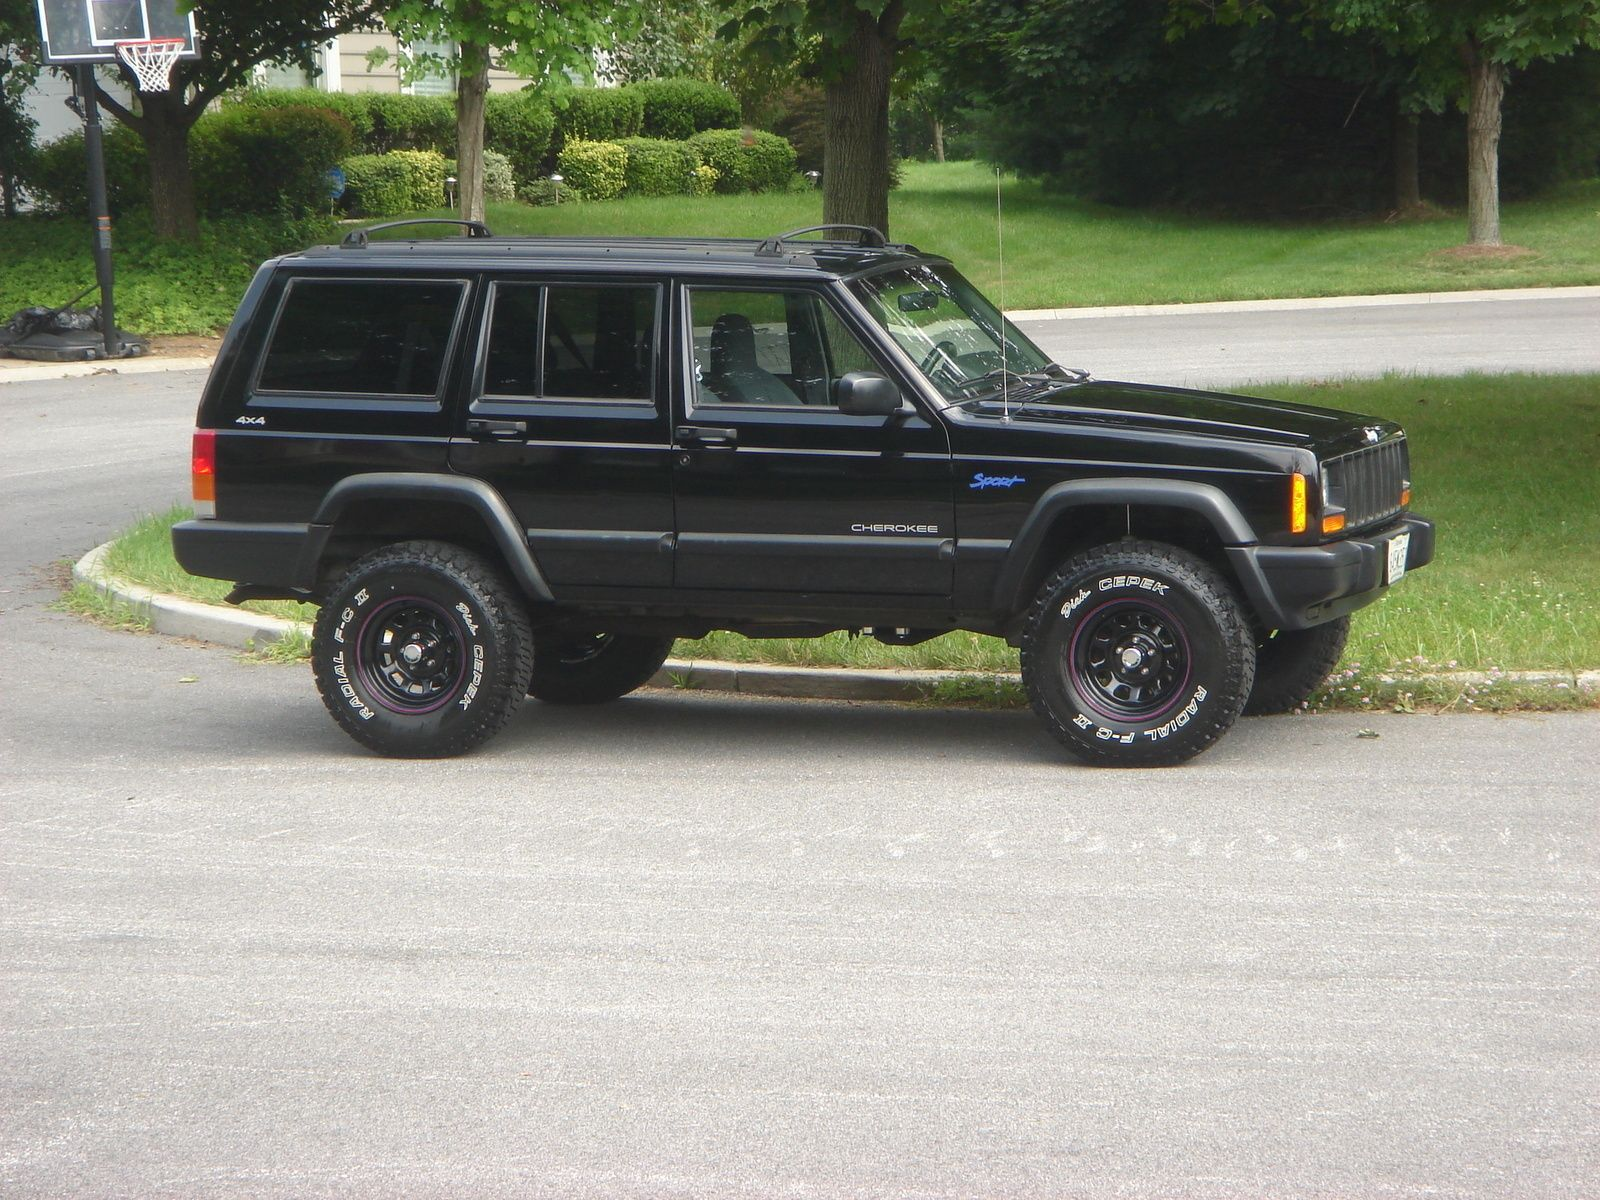 1997 jeep cherokee 4 dr sport 4wd stuff to buy pinterest cherokee jeeps and 4x4. Black Bedroom Furniture Sets. Home Design Ideas